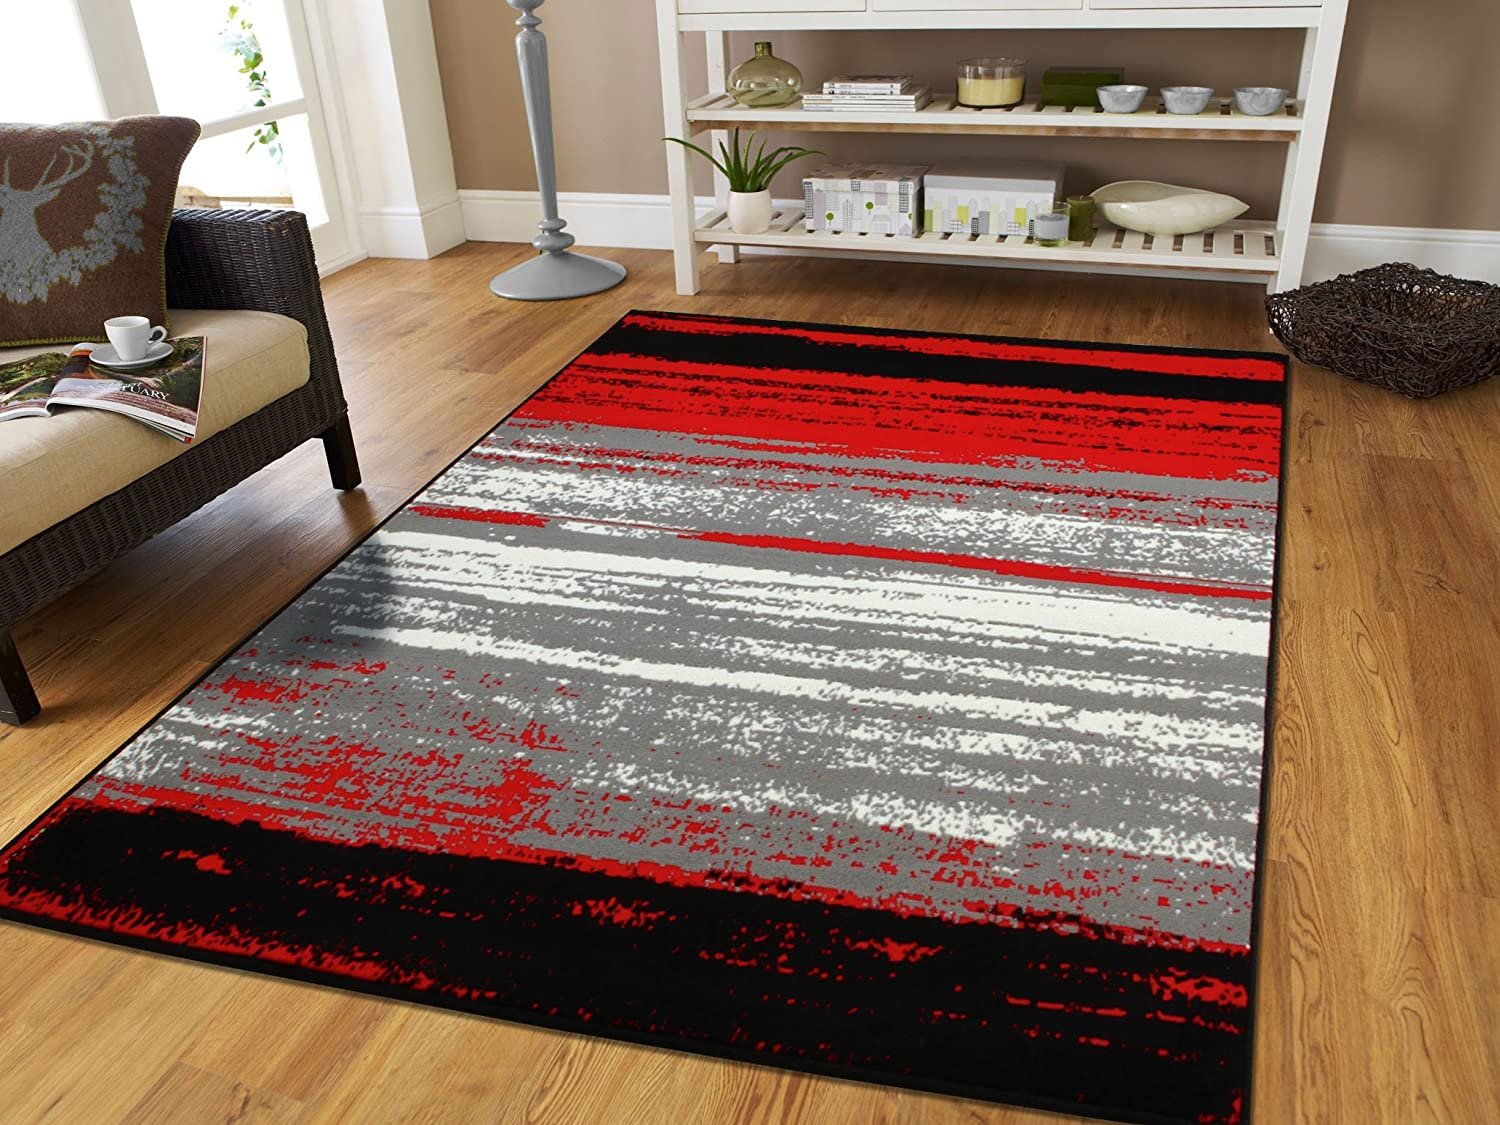 Amazon.com: Large Grey Modern Rugs For Living Room 8x10 Abstract Area Rugs  Rugs For Office And Kitchen Clearance Red Black Ivory Cheap Rug Sets, ... Part 43